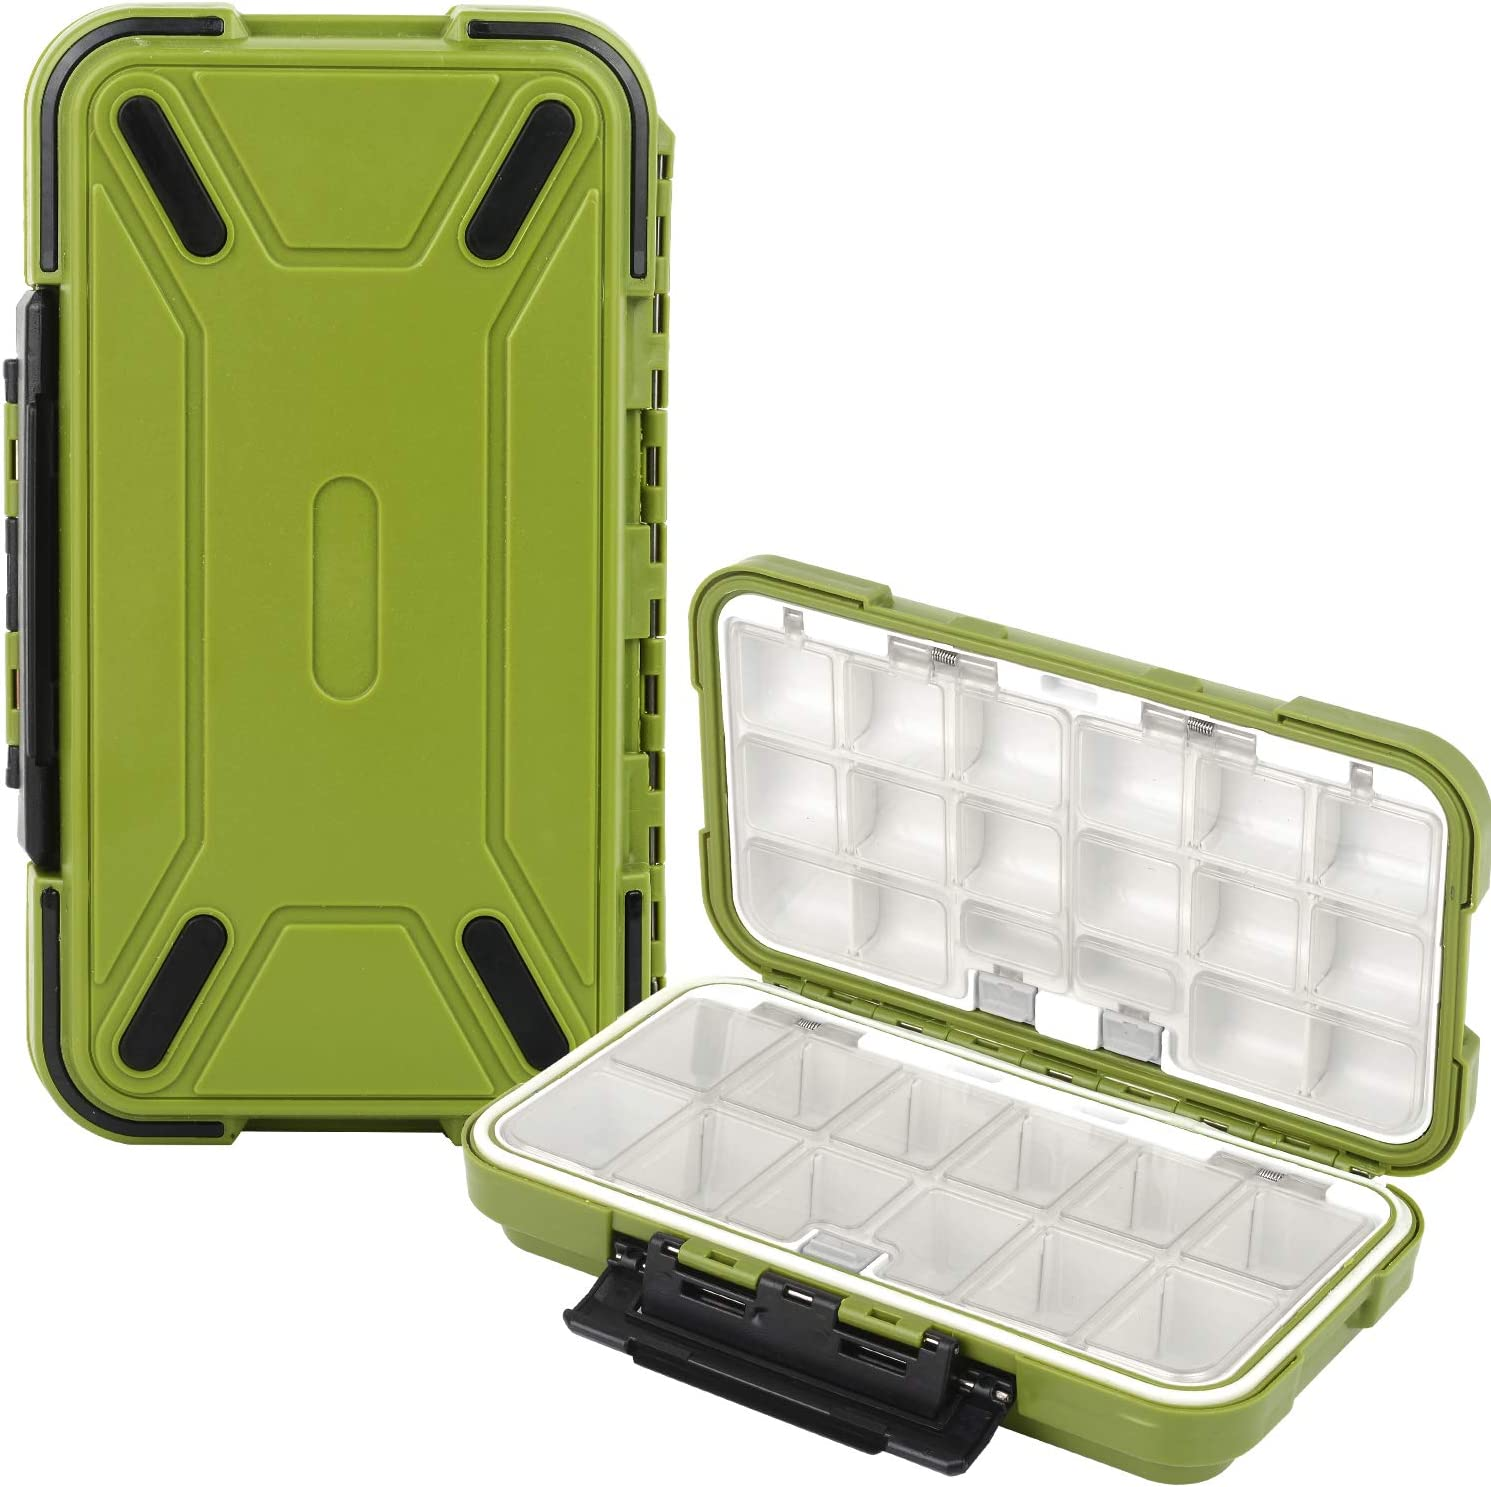 Compact Fishing Tackle Box Lures Hooks Accessory Storage Case with Dividers